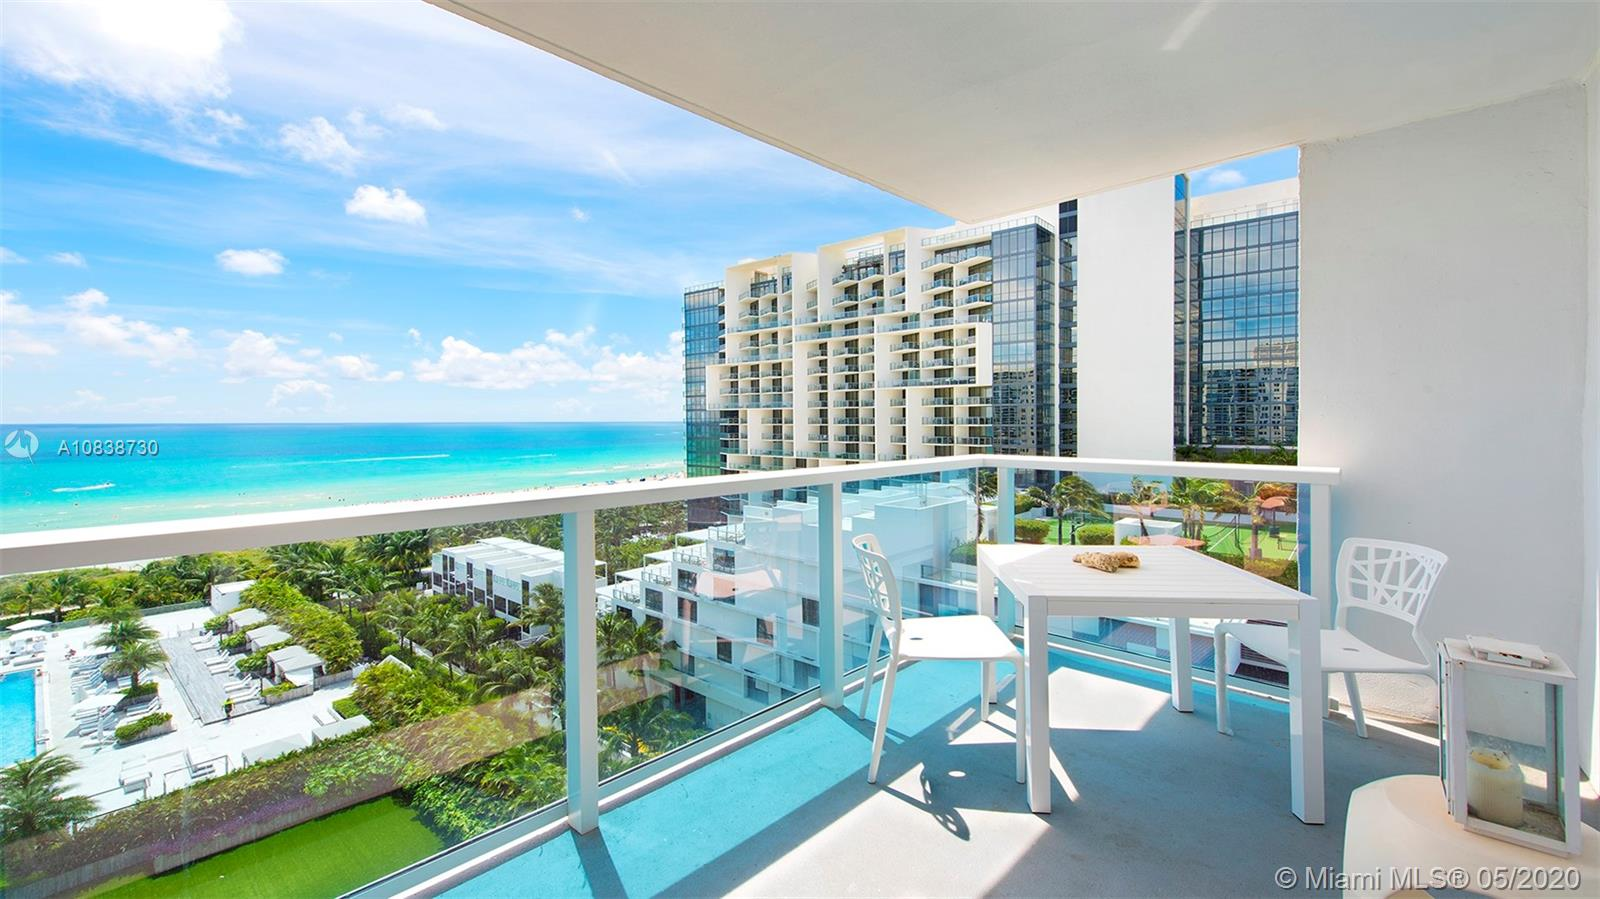 2301 Collins Ave # 1138, Miami Beach, Florida 33139, 2 Bedrooms Bedrooms, ,1 BathroomBathrooms,Residential Lease,For Rent,2301 Collins Ave # 1138,A10838730